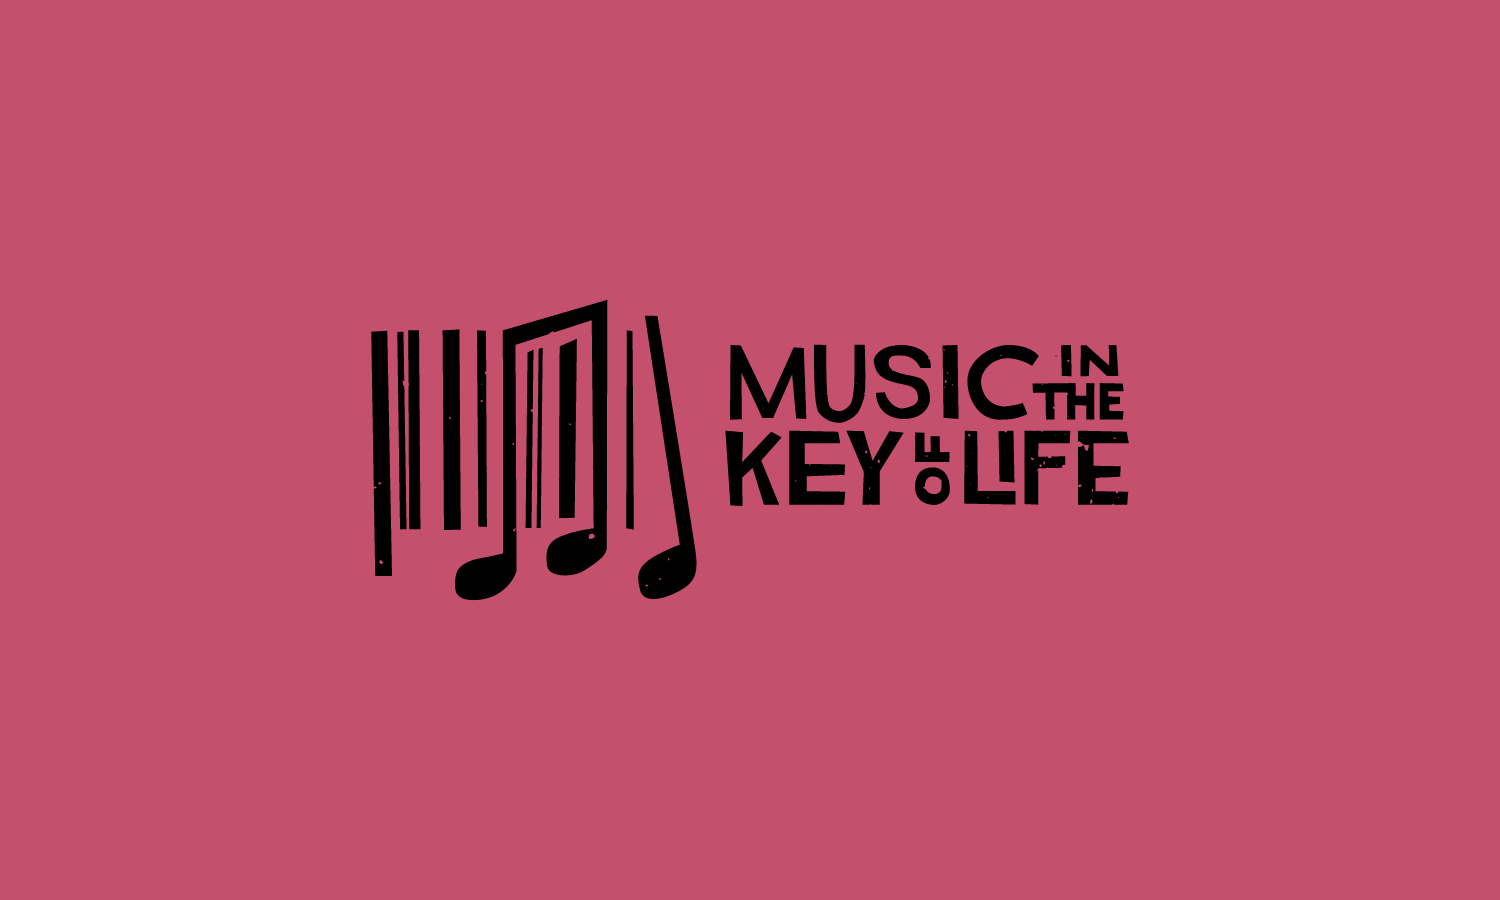 Music in the Key of Life by Viktor Lanneld and Tedde Twetman